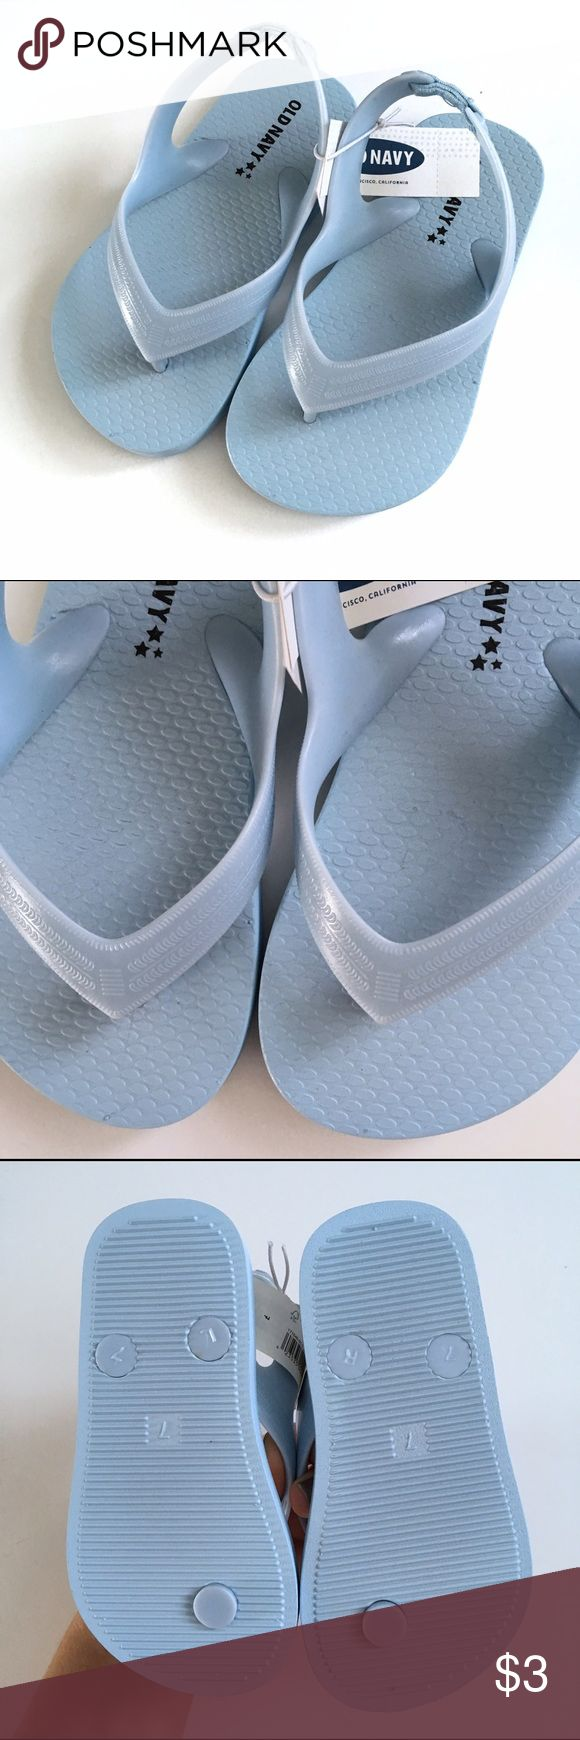 🚀NWT Old Navy Flip Flops 🚀 NWT Old Navy Boys Flip Flops. Toddler size 7. Baby blue with elastic strap at ankle. $2 Bundle and offer $1 less (PM requires &3 minimum for sale price.  ❗️Must be Bundled❗️$10 minimum Old Navy Shoes Sandals & Flip Flops